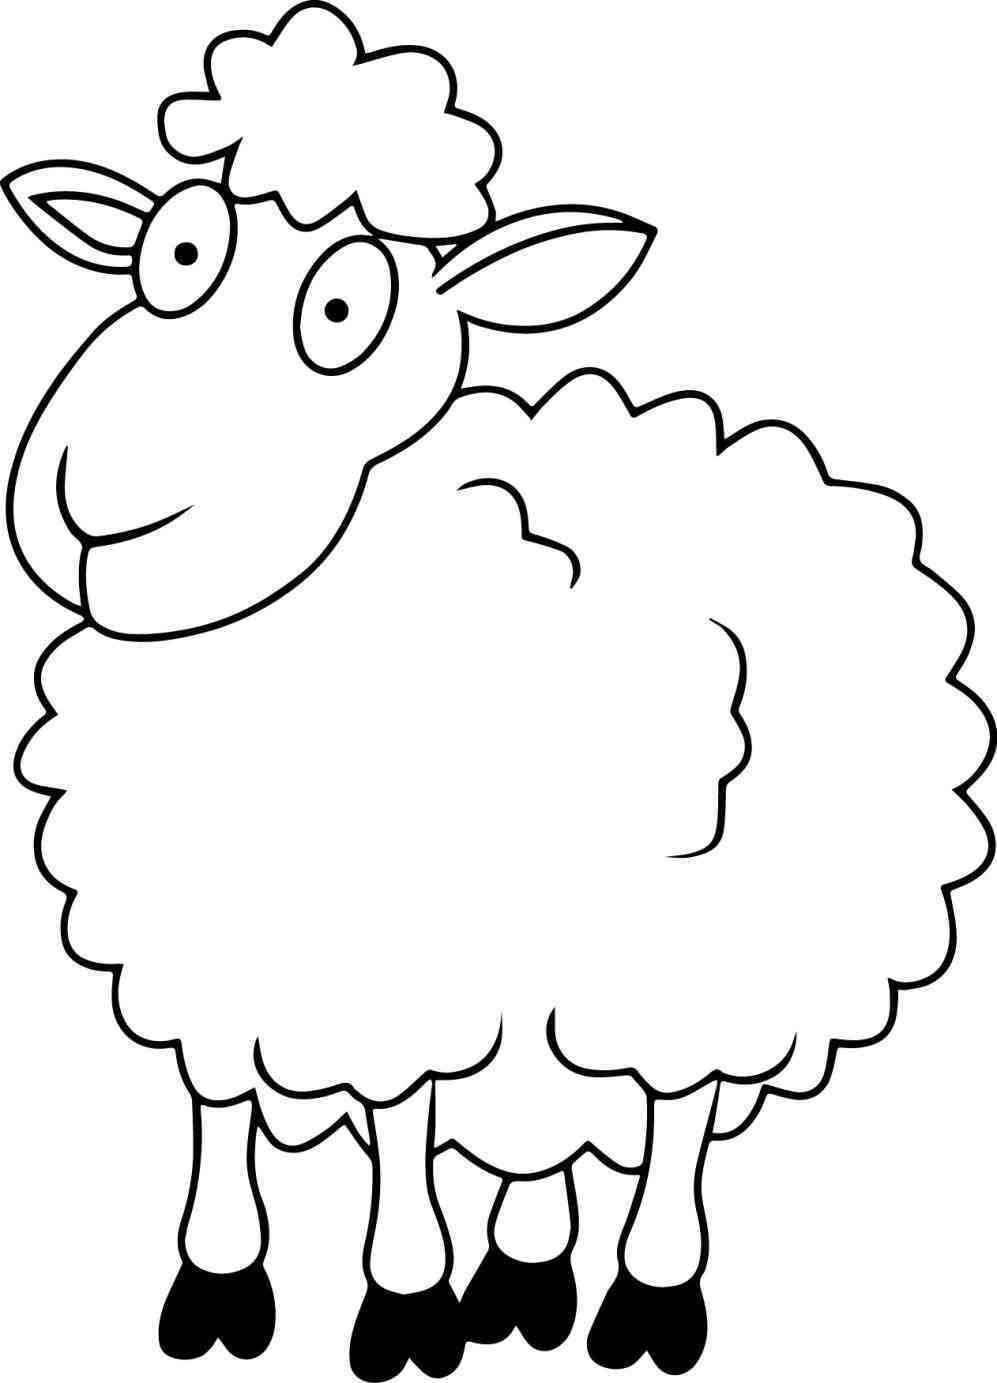 997x1383 By Viergacht On New Sheep Coloring Pages New Lamb Cut